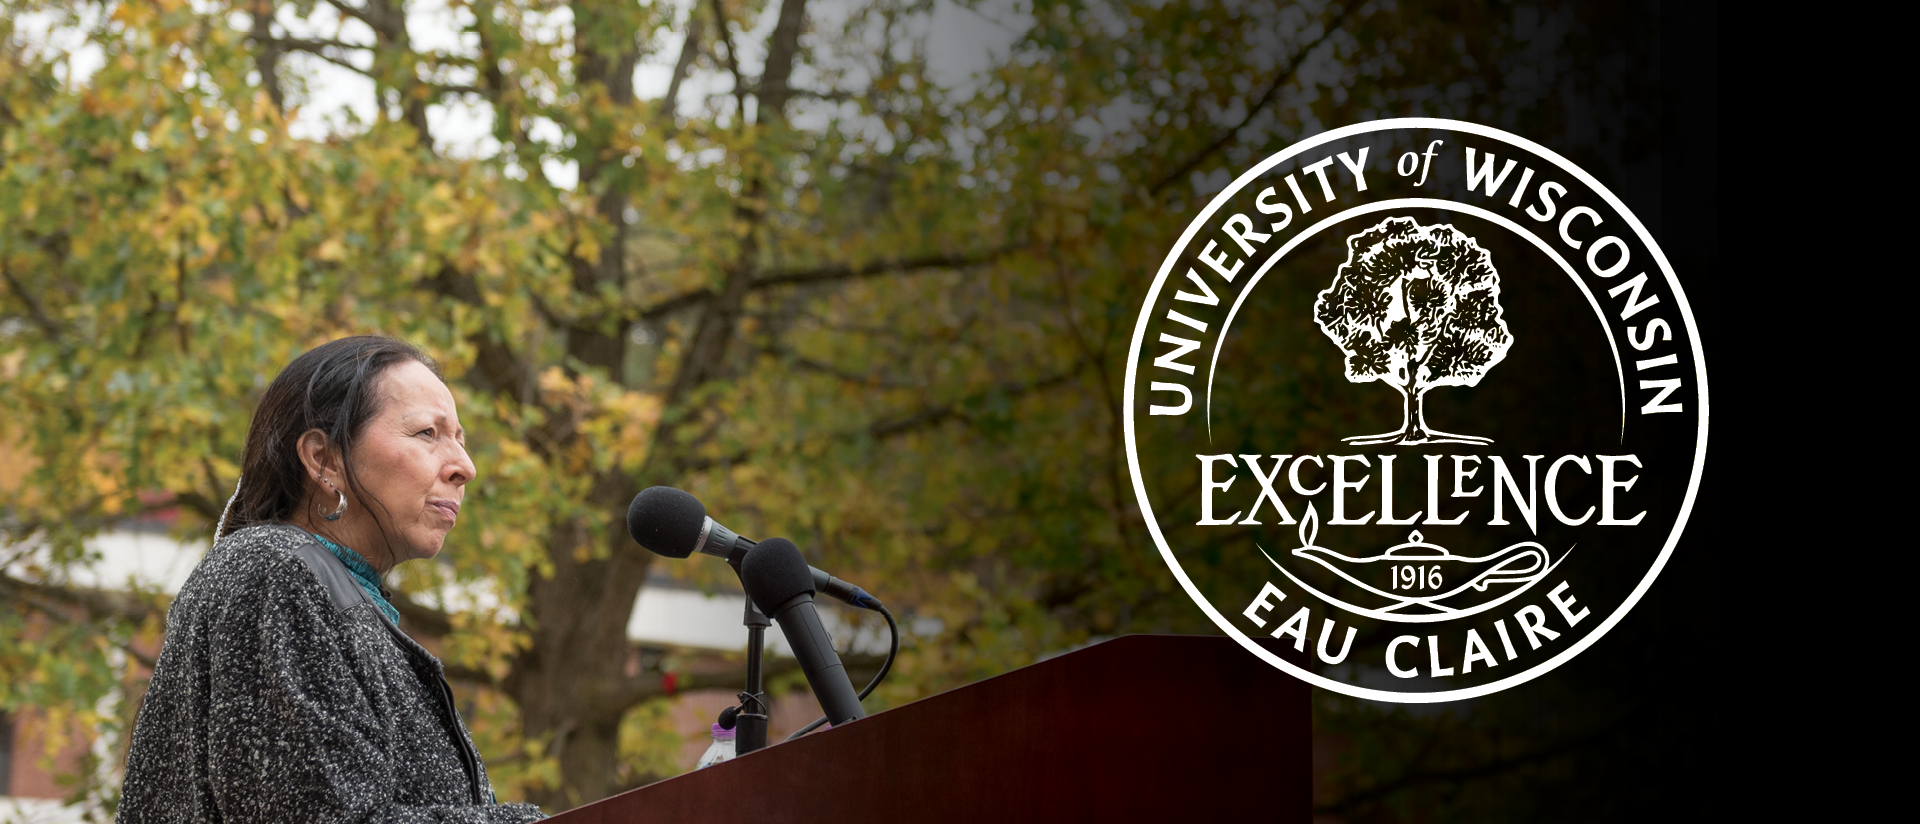 """The University Seal prominently features the Council Oak tree and the word """"Excellence"""""""